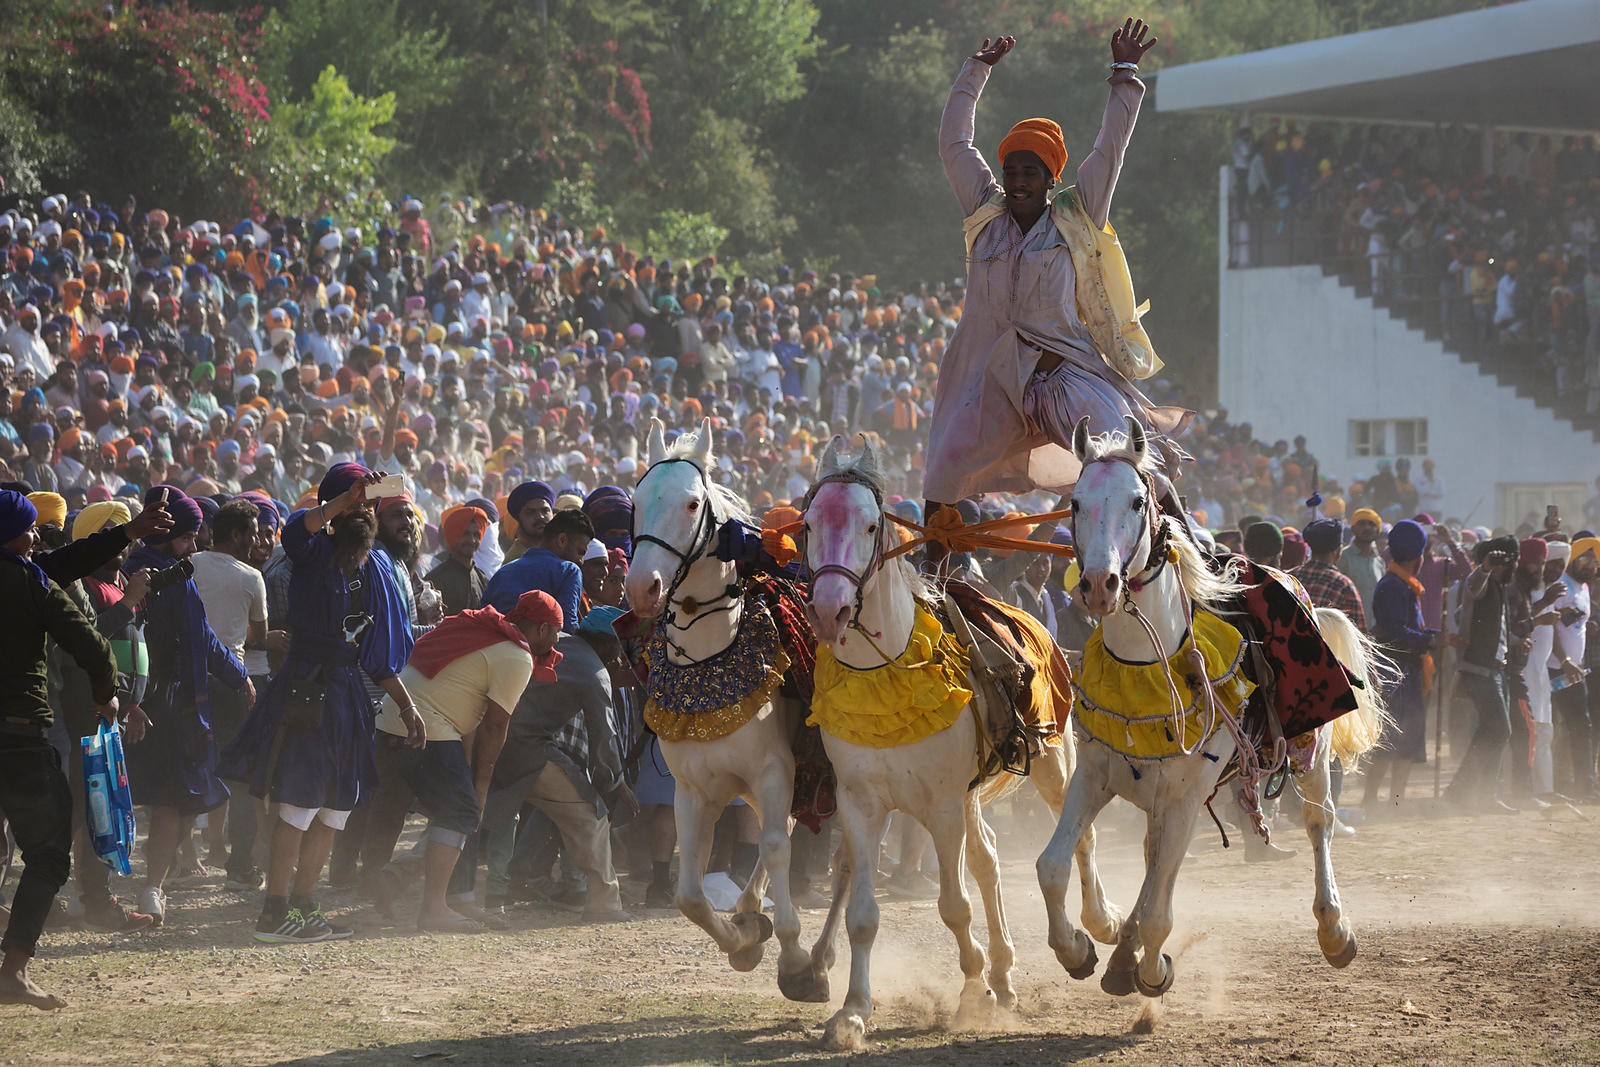 A Nihang Sikh Rides Three Horses at one Time During the Horse Games